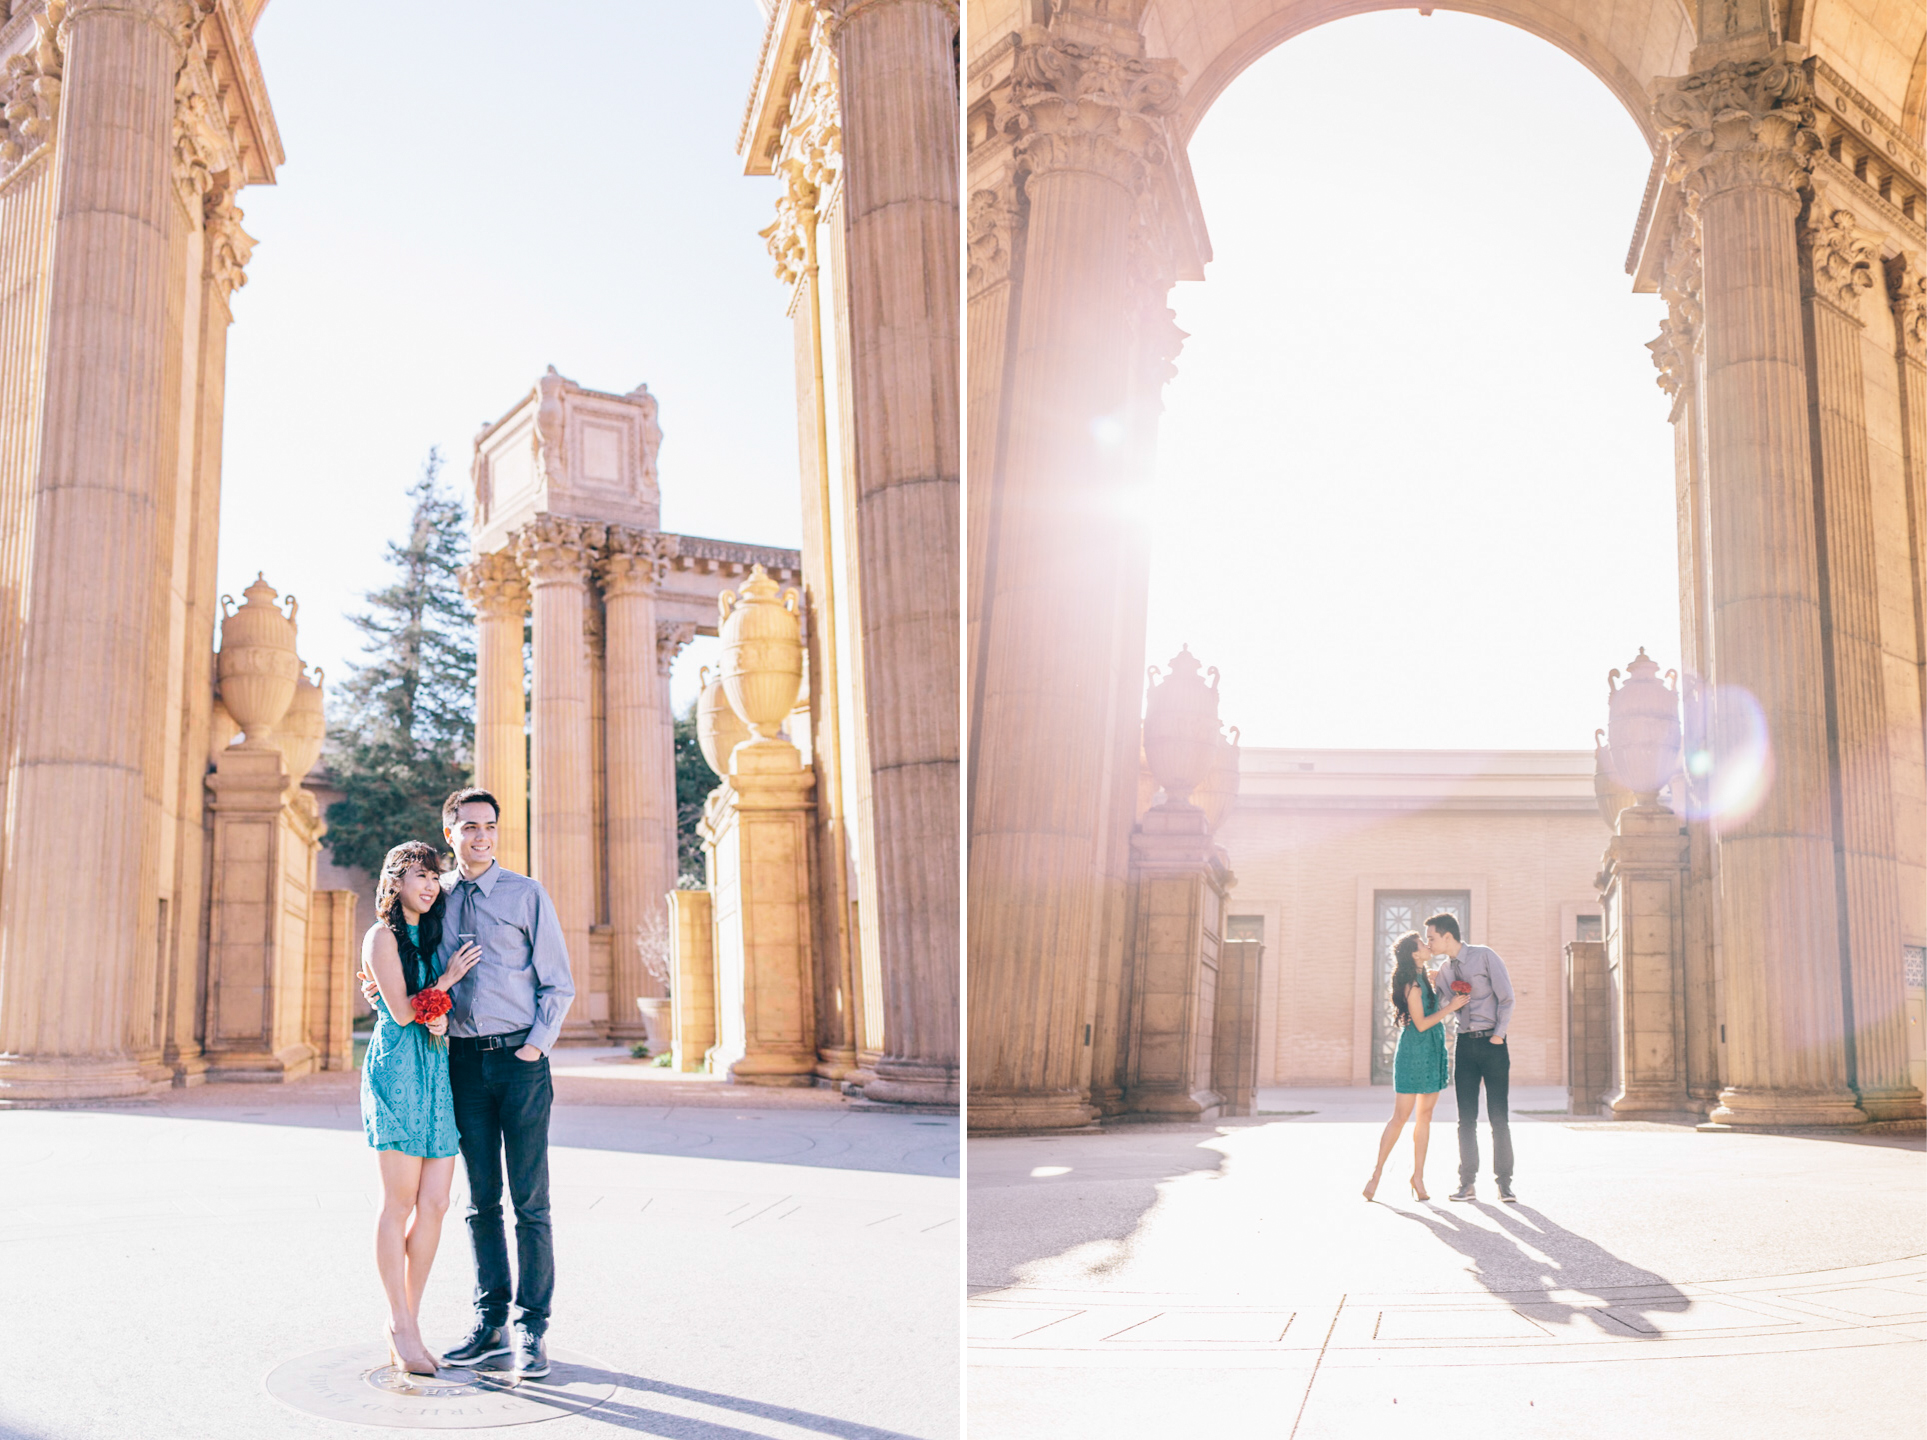 San Francisco Engagement Session Crissy Fields Palace of Fine Arts Engagement Photos by Engagement and Wedding Photographer JBJ Pictures-302.jpg